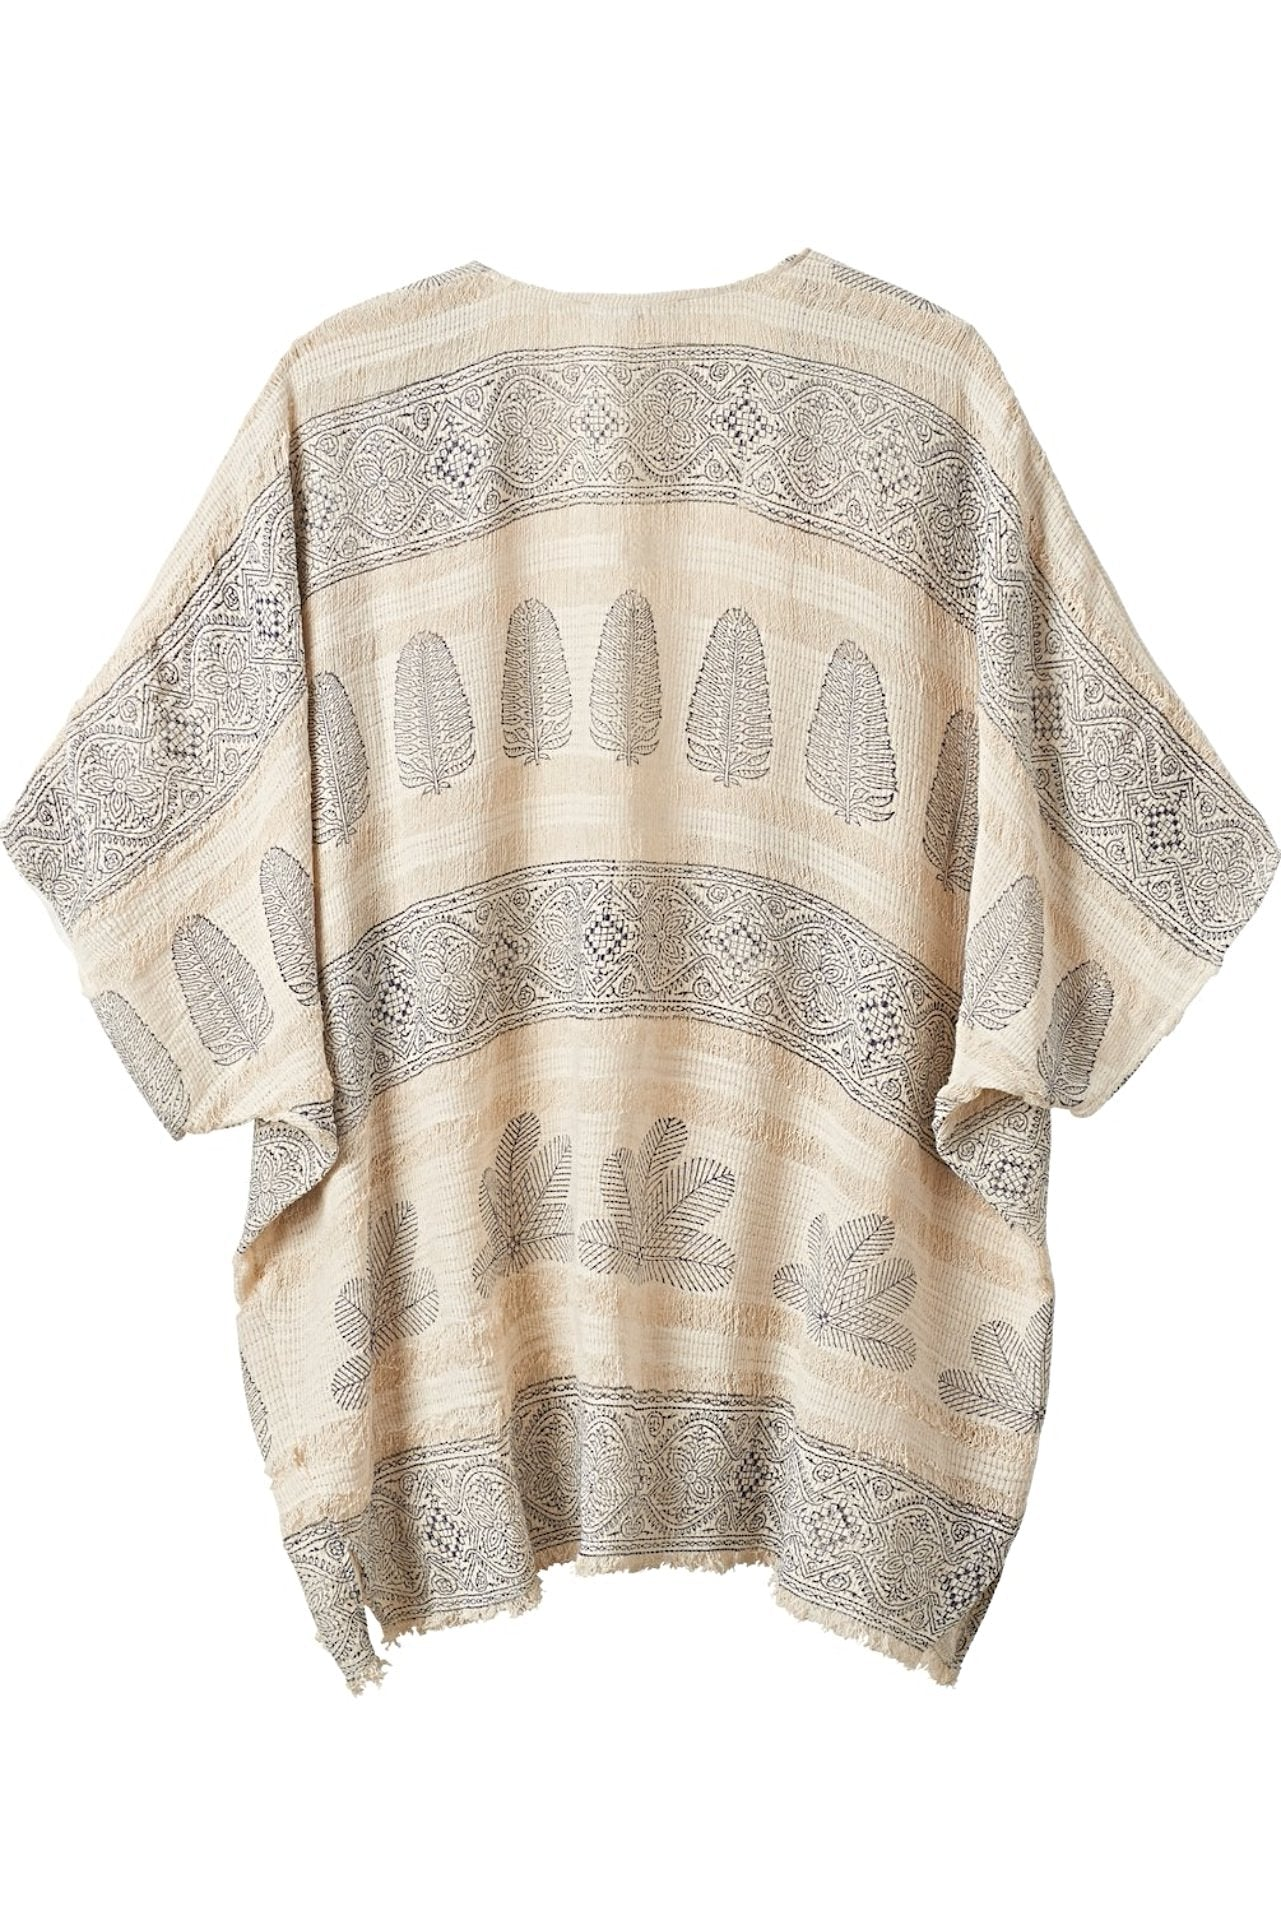 MARLENA Block Printed Top